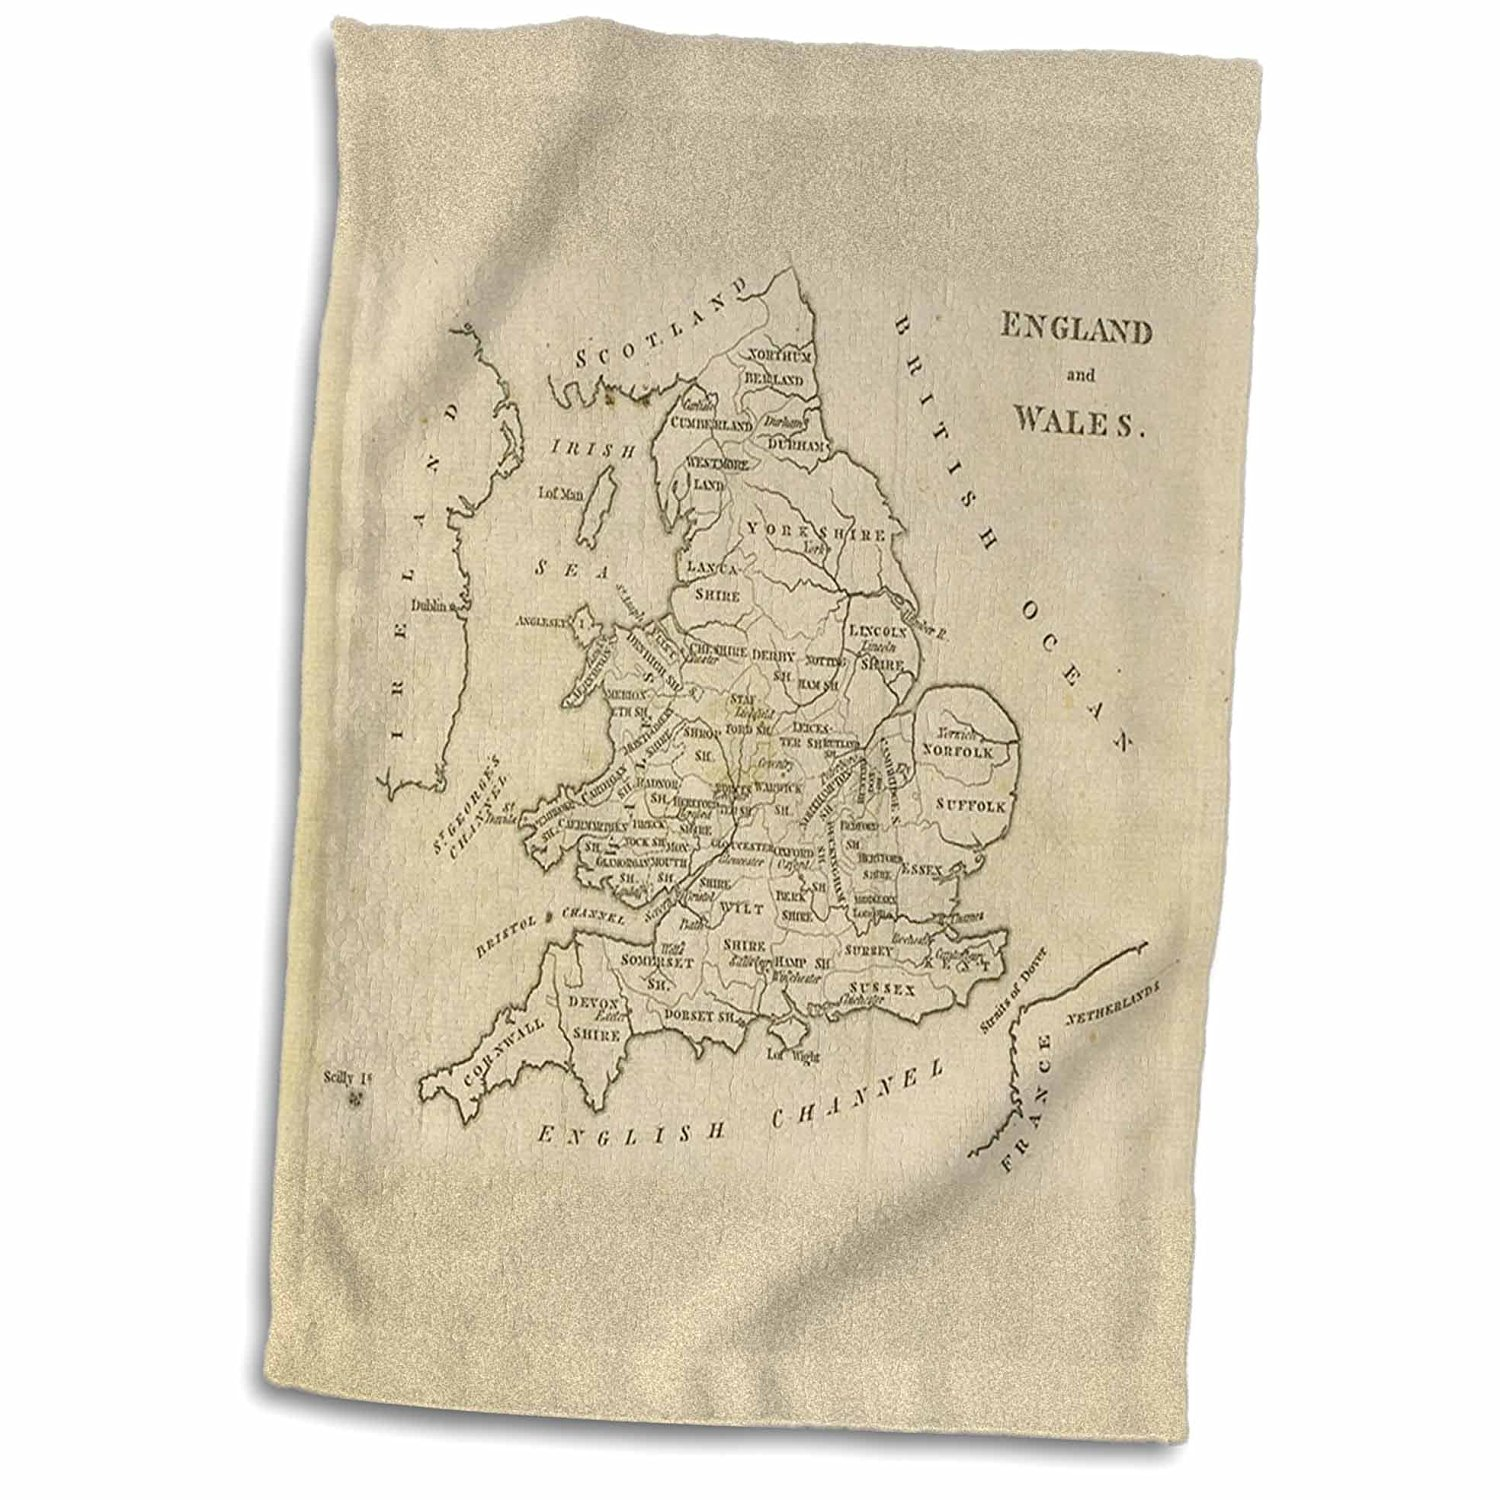 3dRose Florene - Vintage Maps - Print of England And Wales 1800 - 12x18 Towel (twl_204009_1)